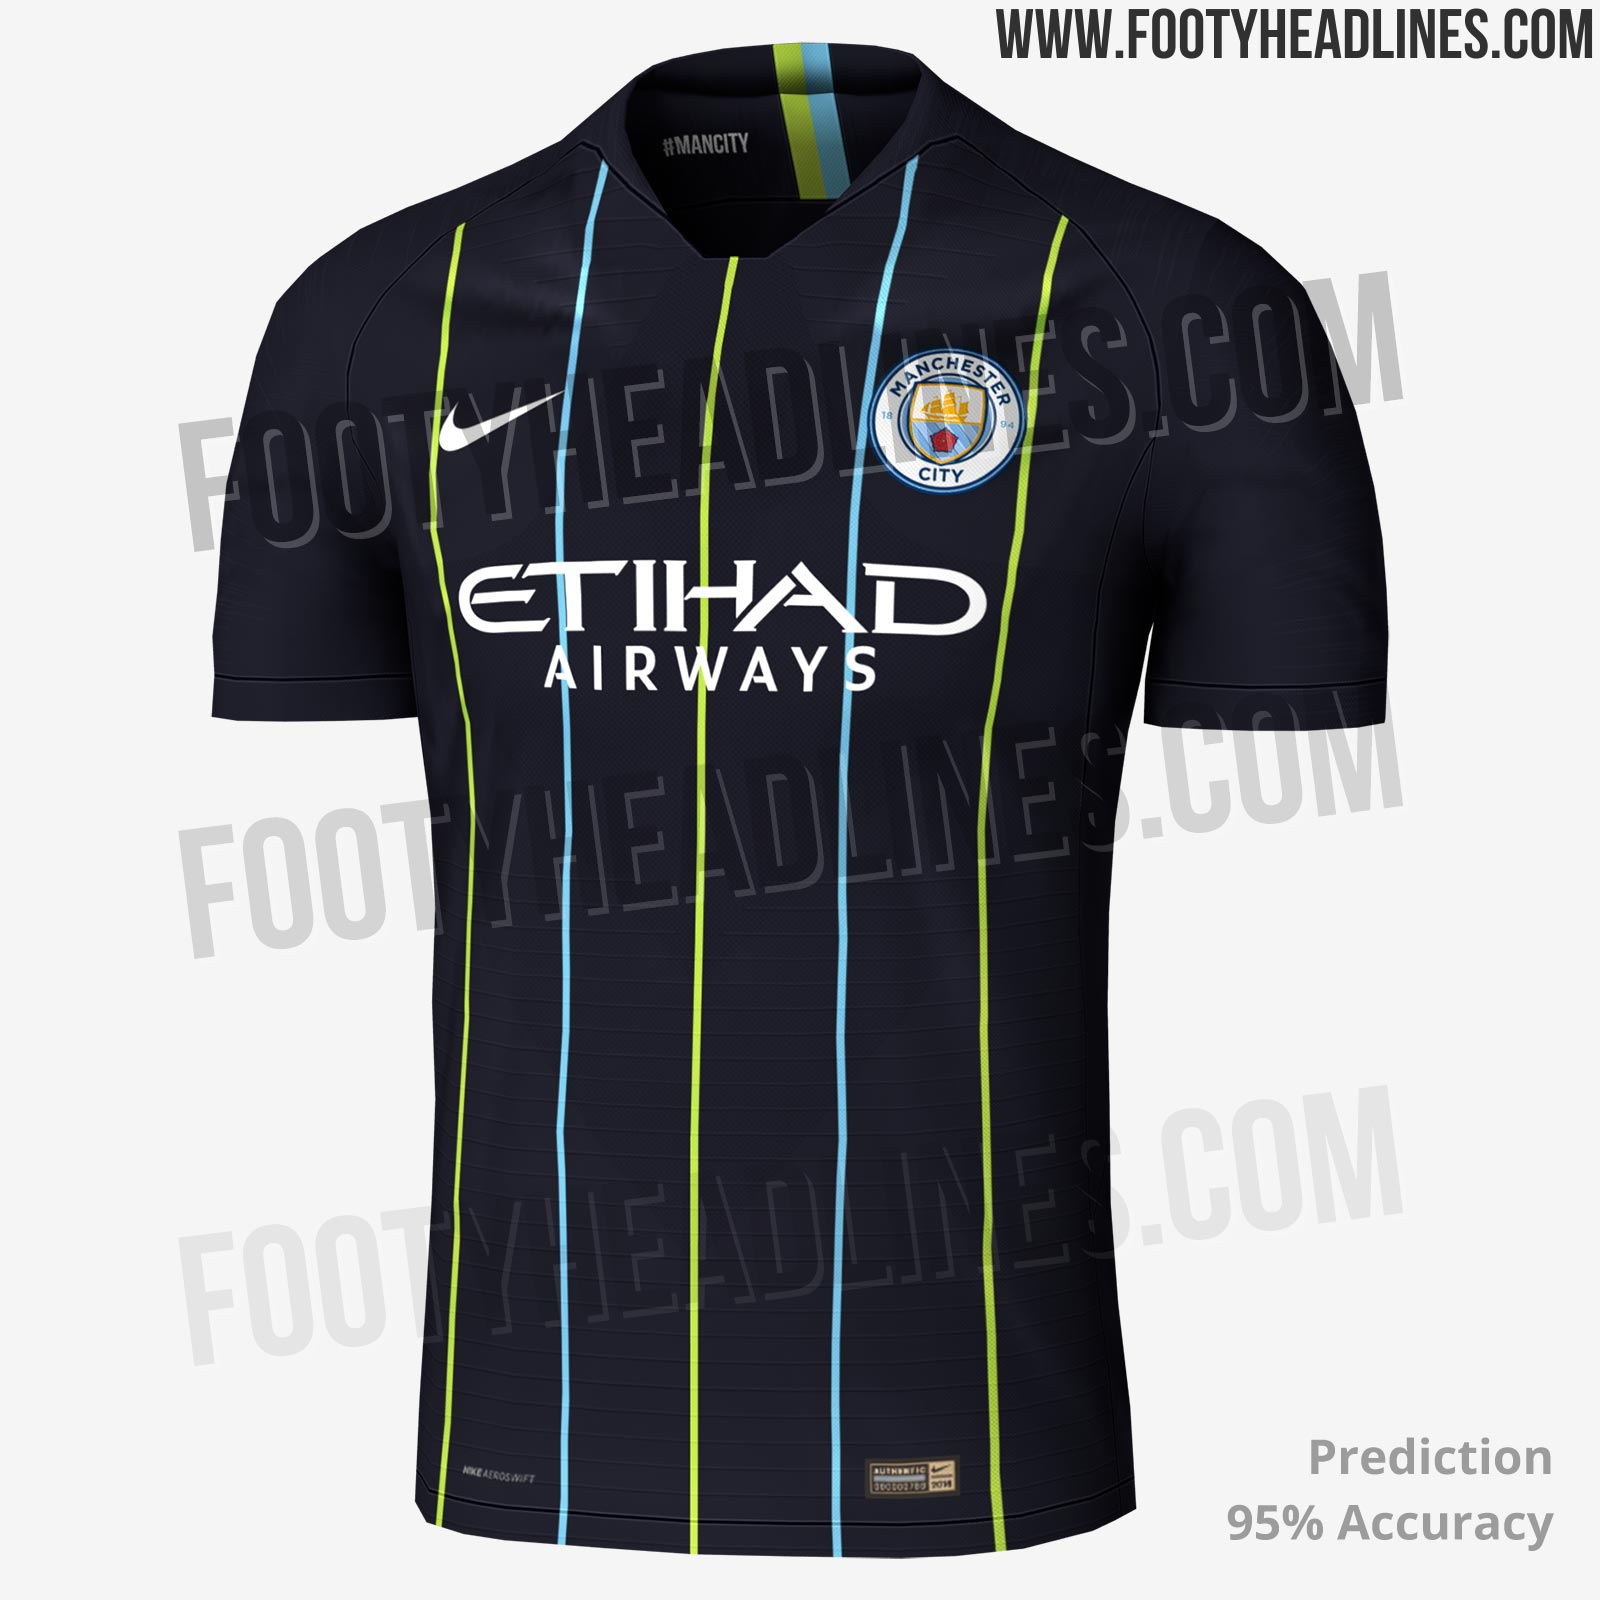 manchester-city-18-19-away-kit-2.jpg